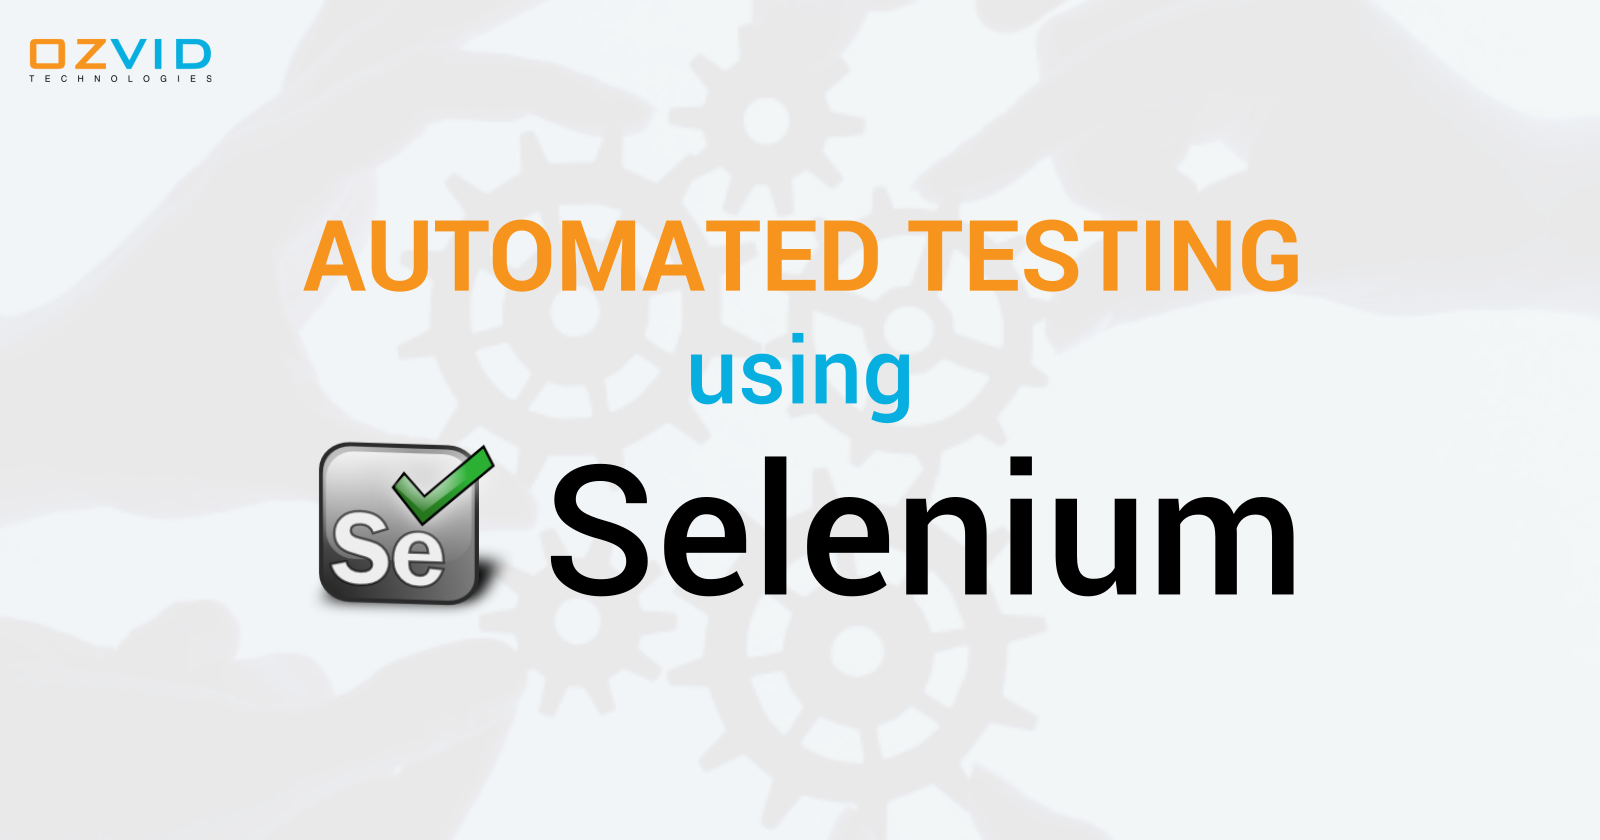 Using Selenium for Automated Testing